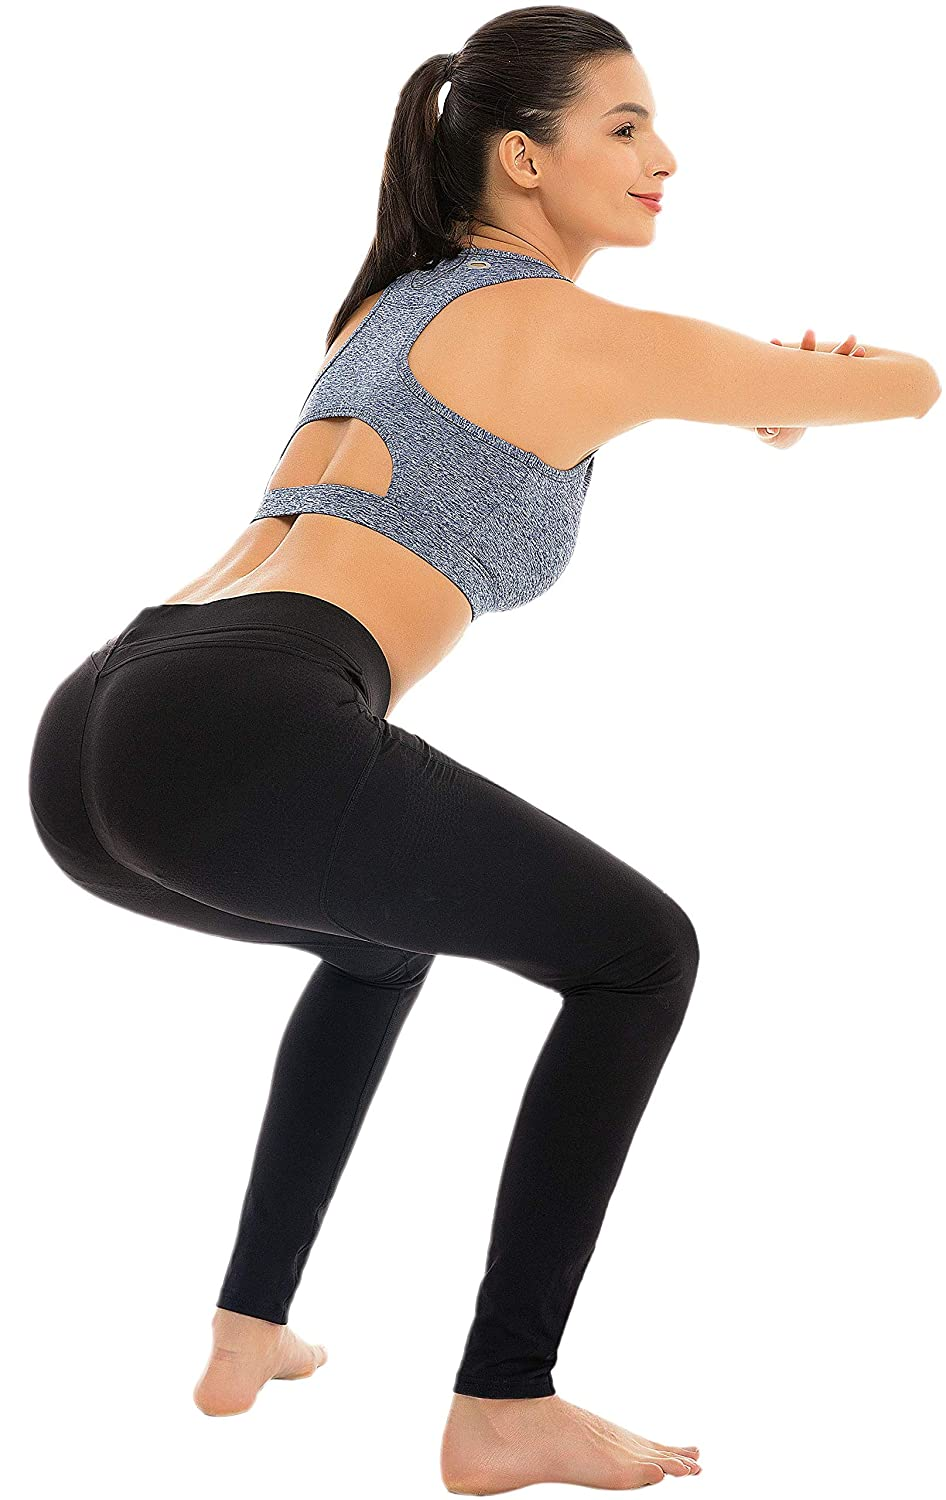 Pity, that sexy ass tight leggings are absolutely